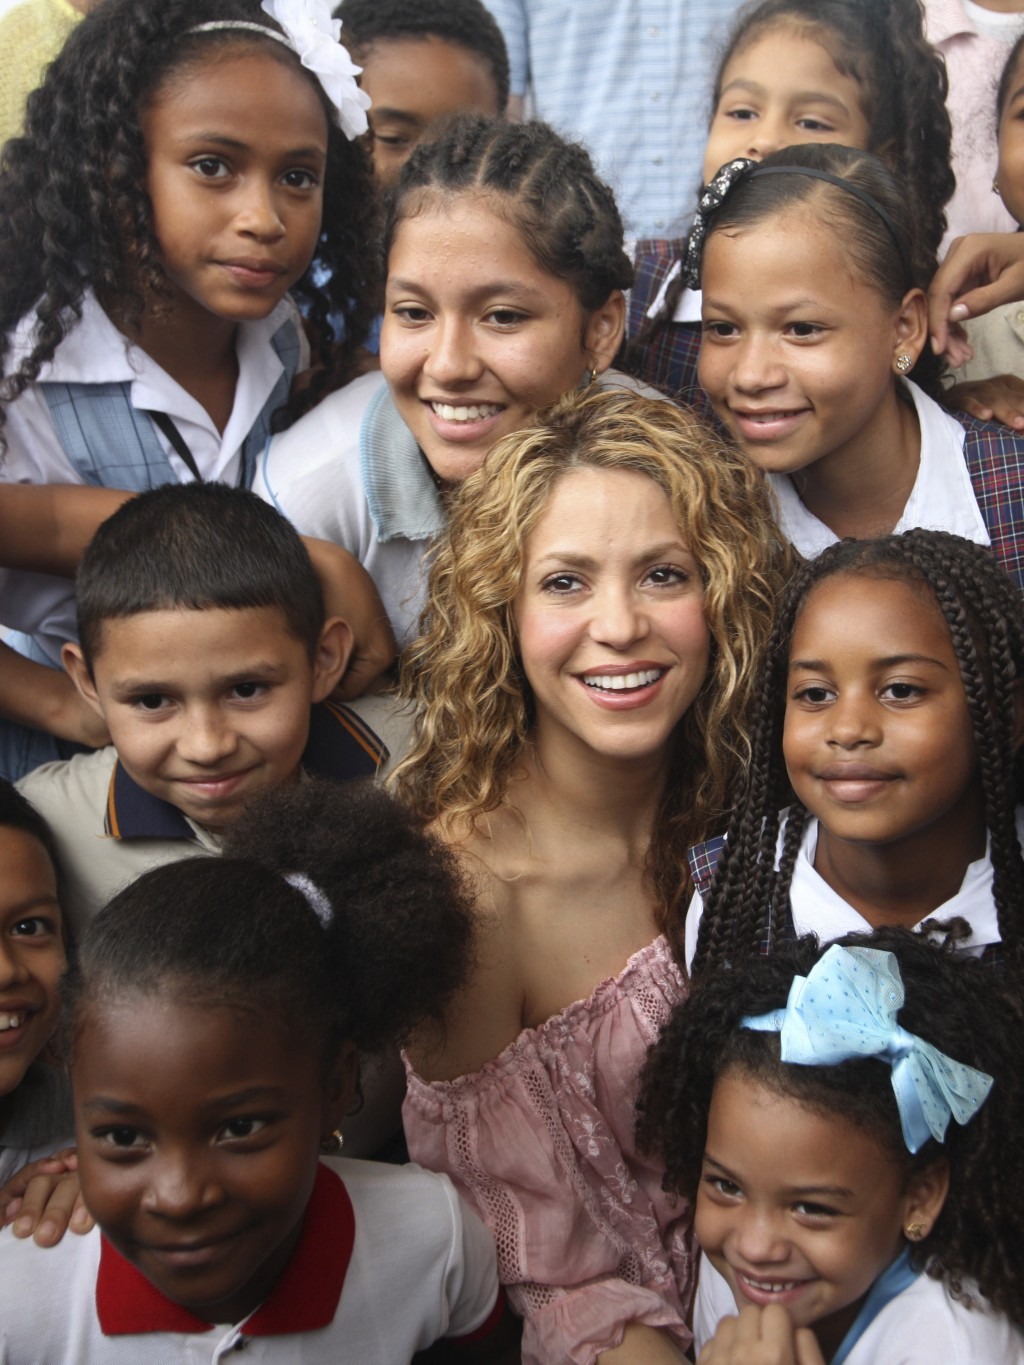 Colombian pop star Shakira posses with children after laying the cornerstone for a school her Barefoot Foundation will build in the Aranjuez neighborh...